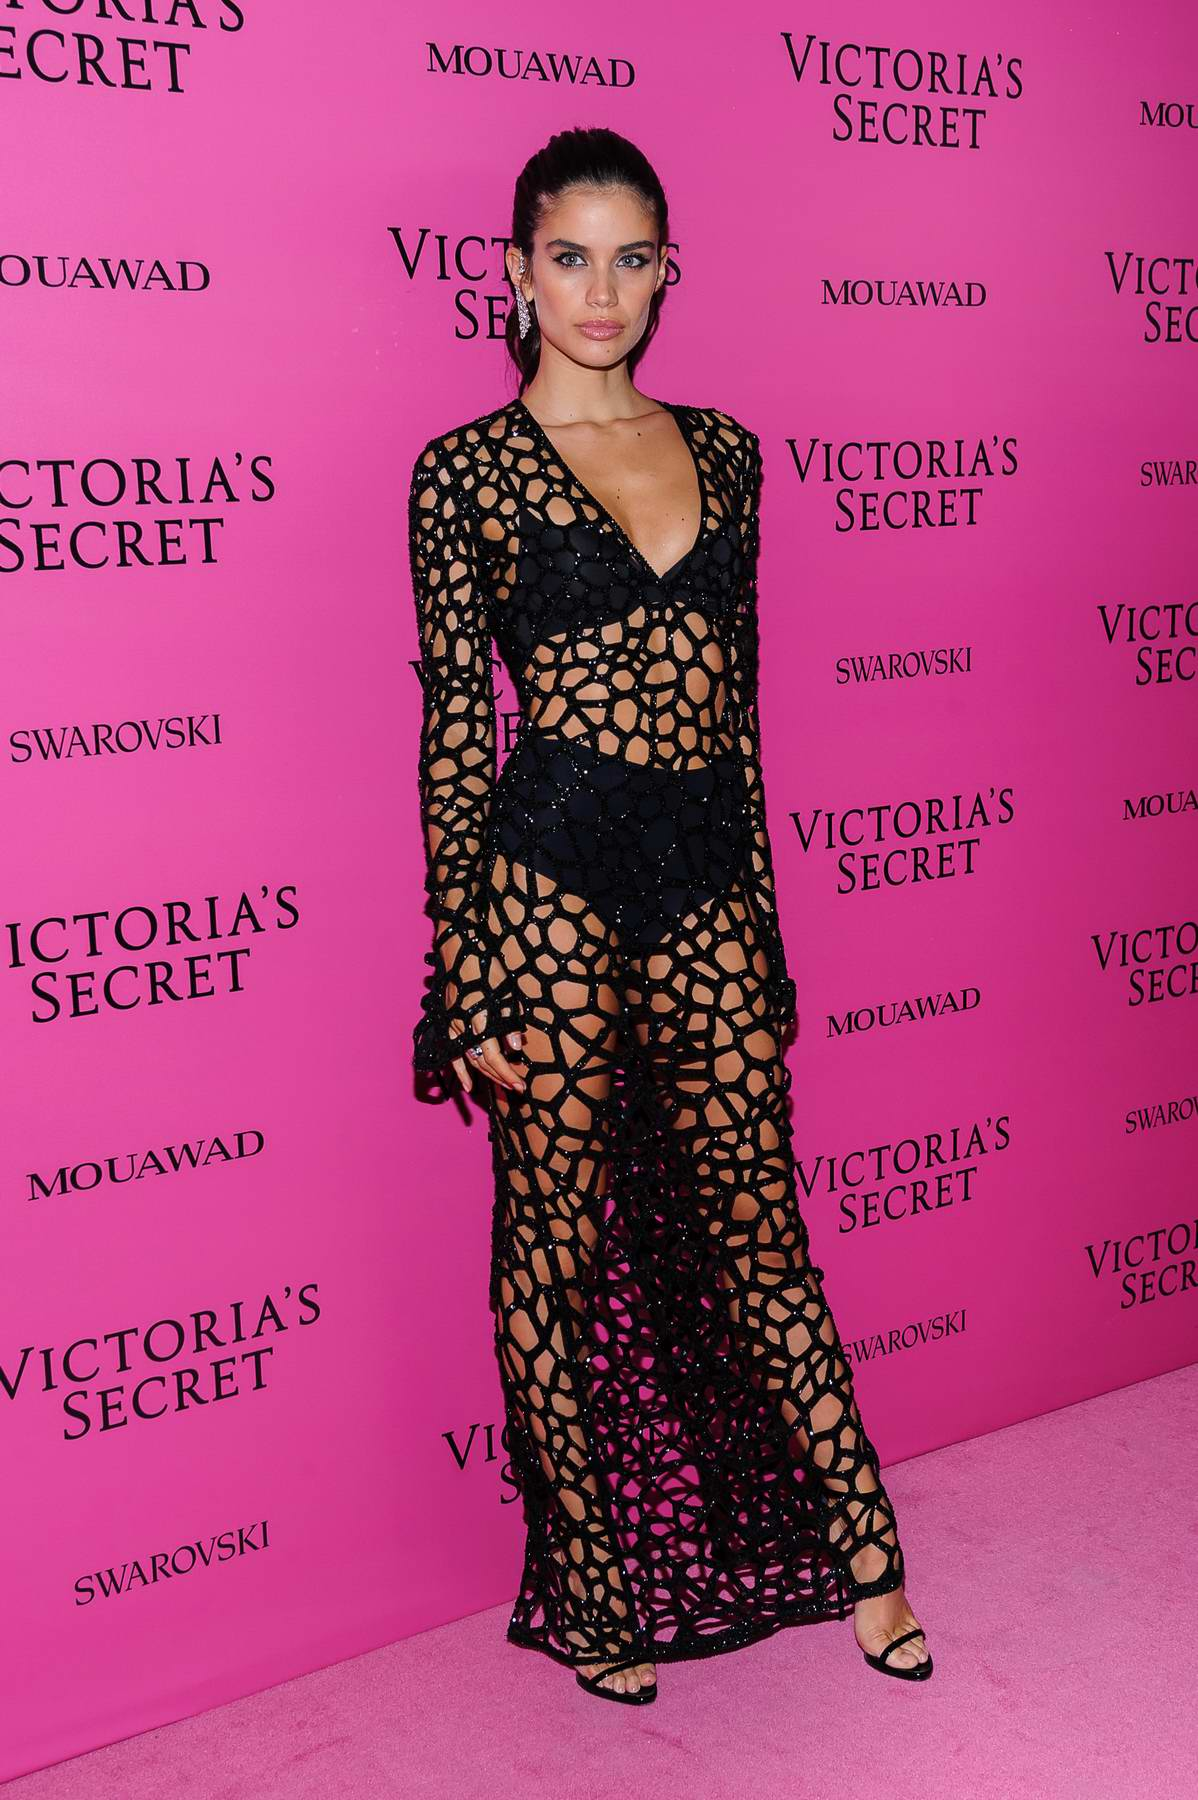 Sara Sampaio at the Victoria's Secret fashion show, pink carpet and after party at Expo Center in Shanghai, China